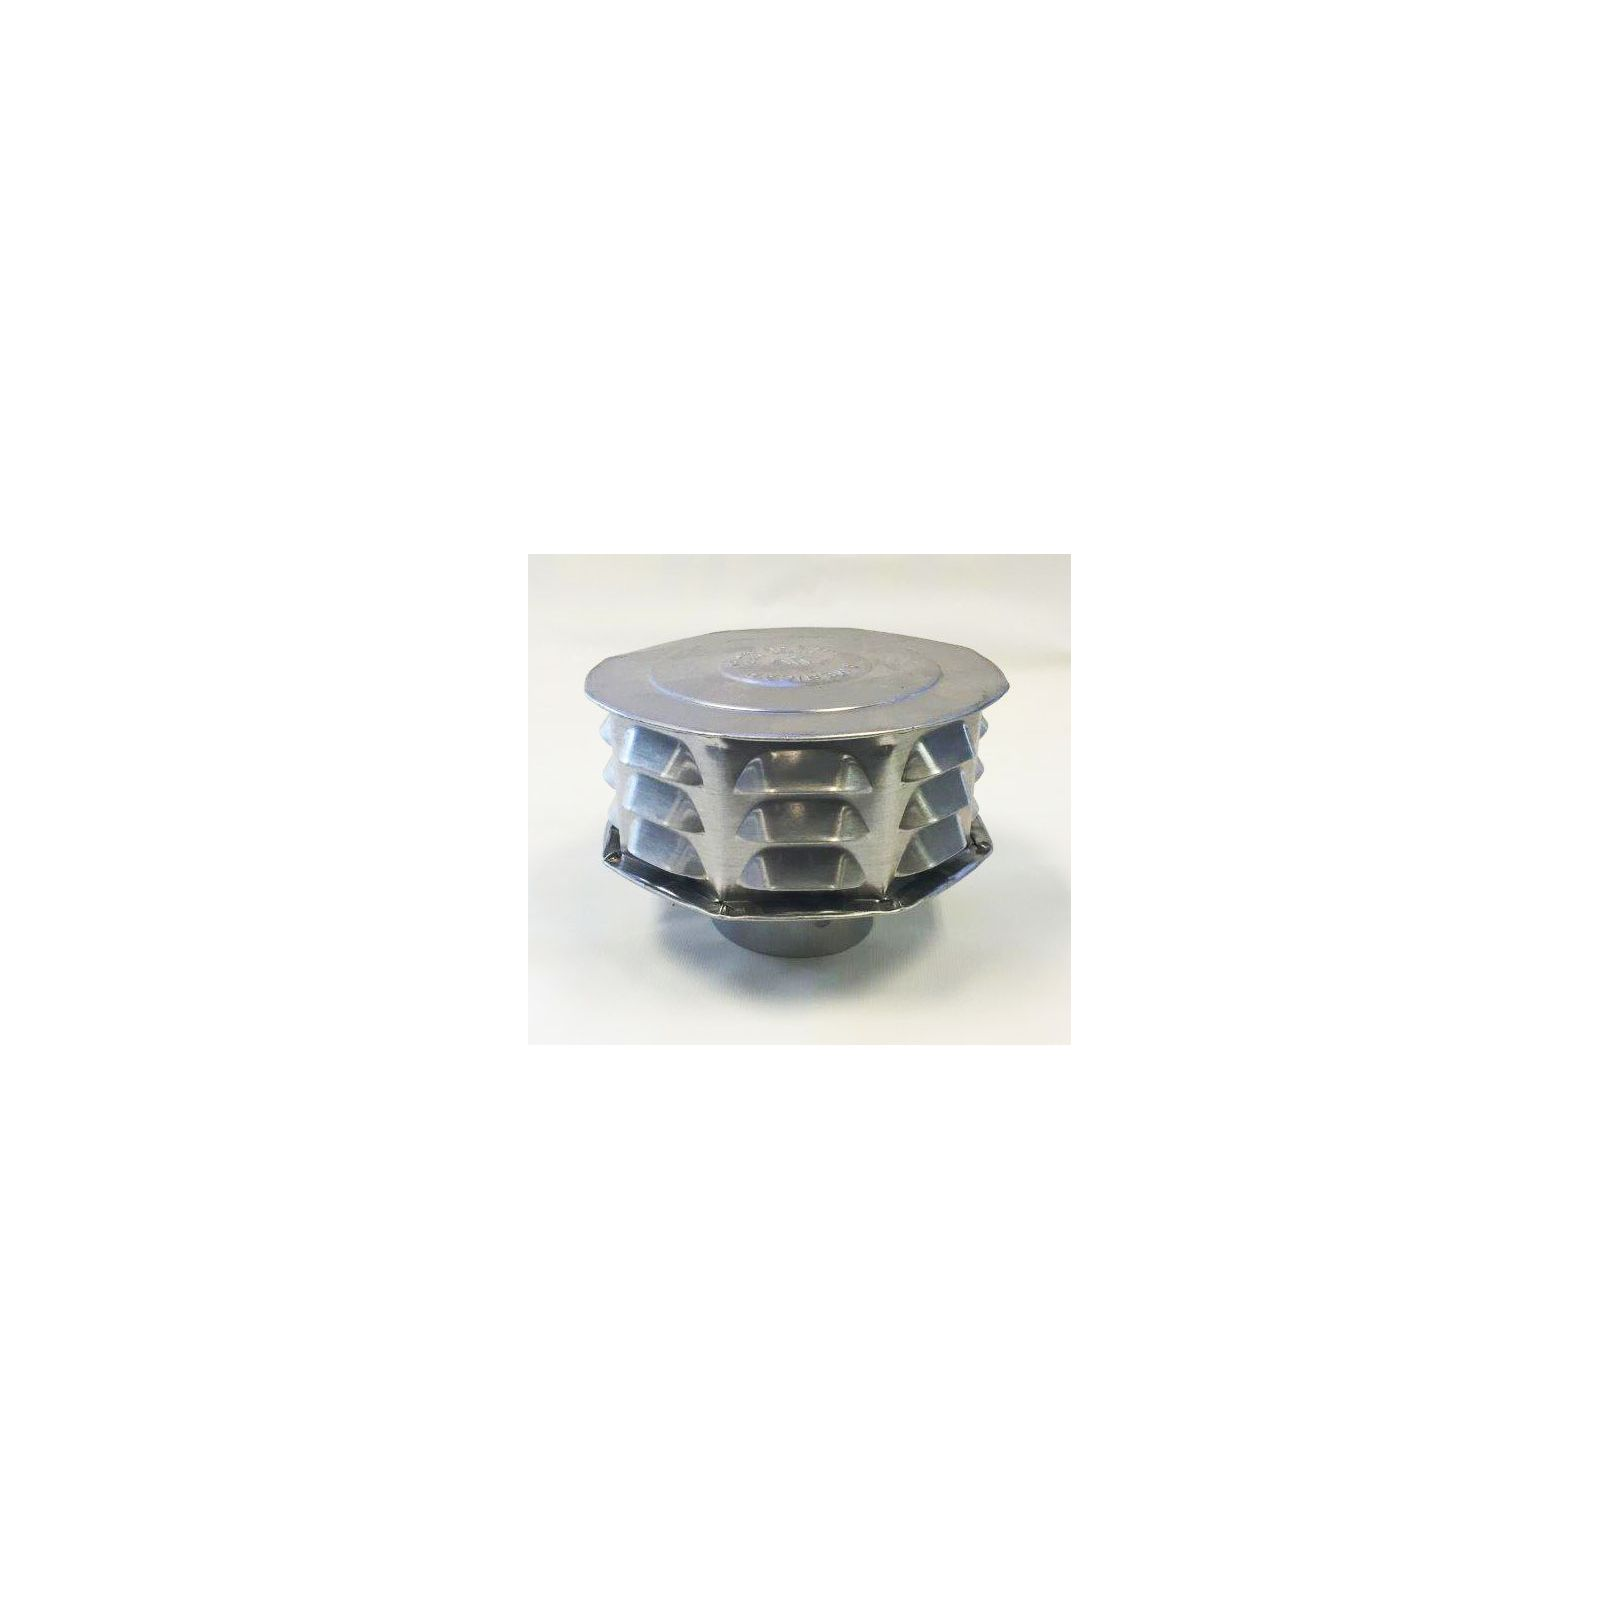 "AmeriVent 3CW - Universal Cap 3"", Louvered"